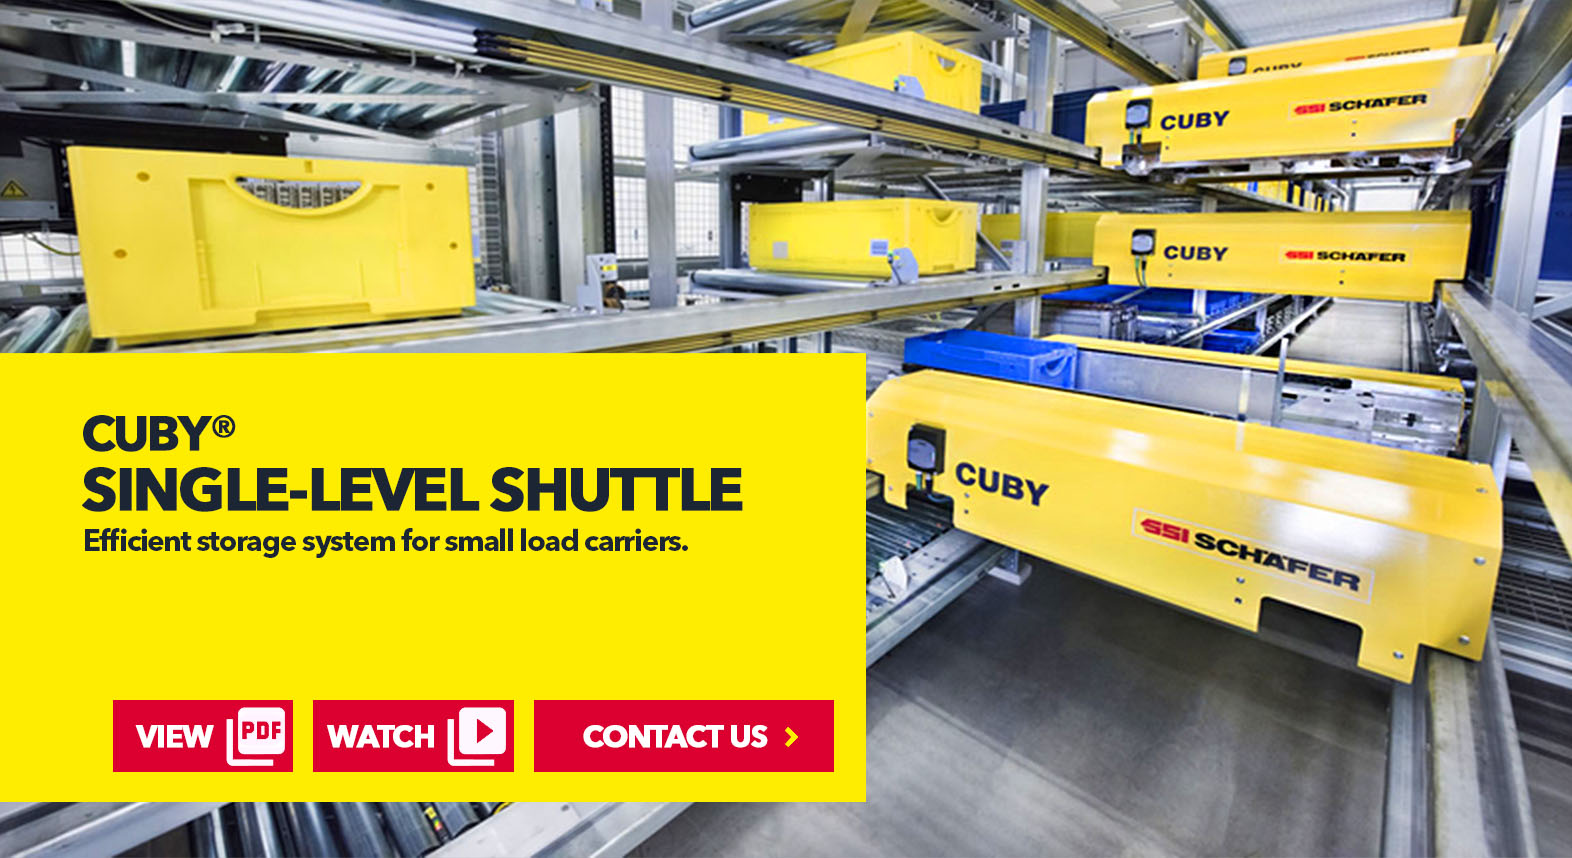 CUBY® Single-Level Shuttle System by SSI Schaefer USA Download Guide, Watch Video, Contact Us. www.schaefershelving.com